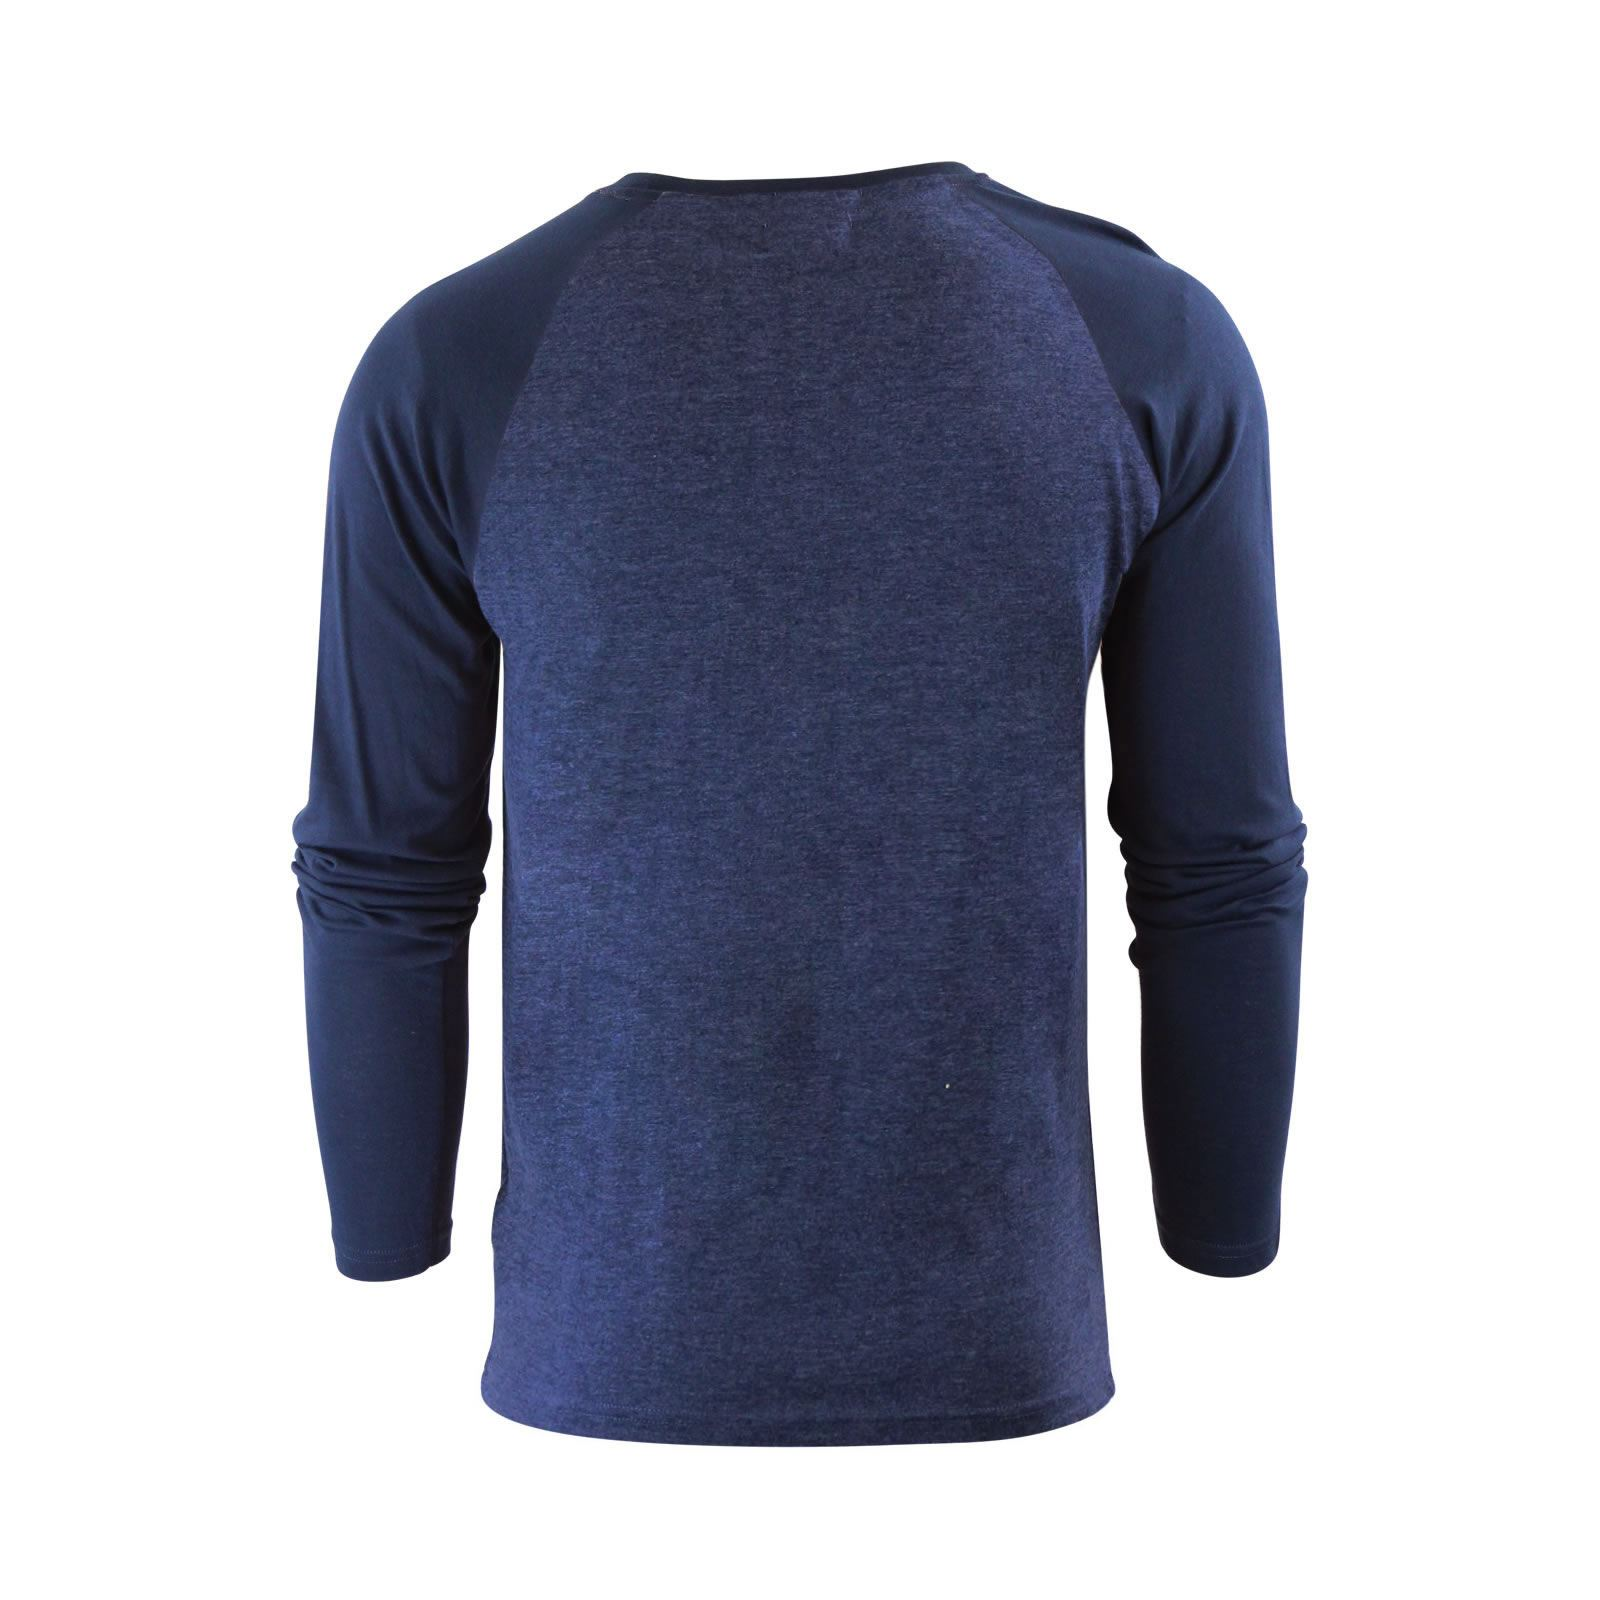 Mens-T-Shirt-by-Brave-Soul-Prague-Cotton-Long-Sleeved-Crew-Neck-Casual-Top thumbnail 59